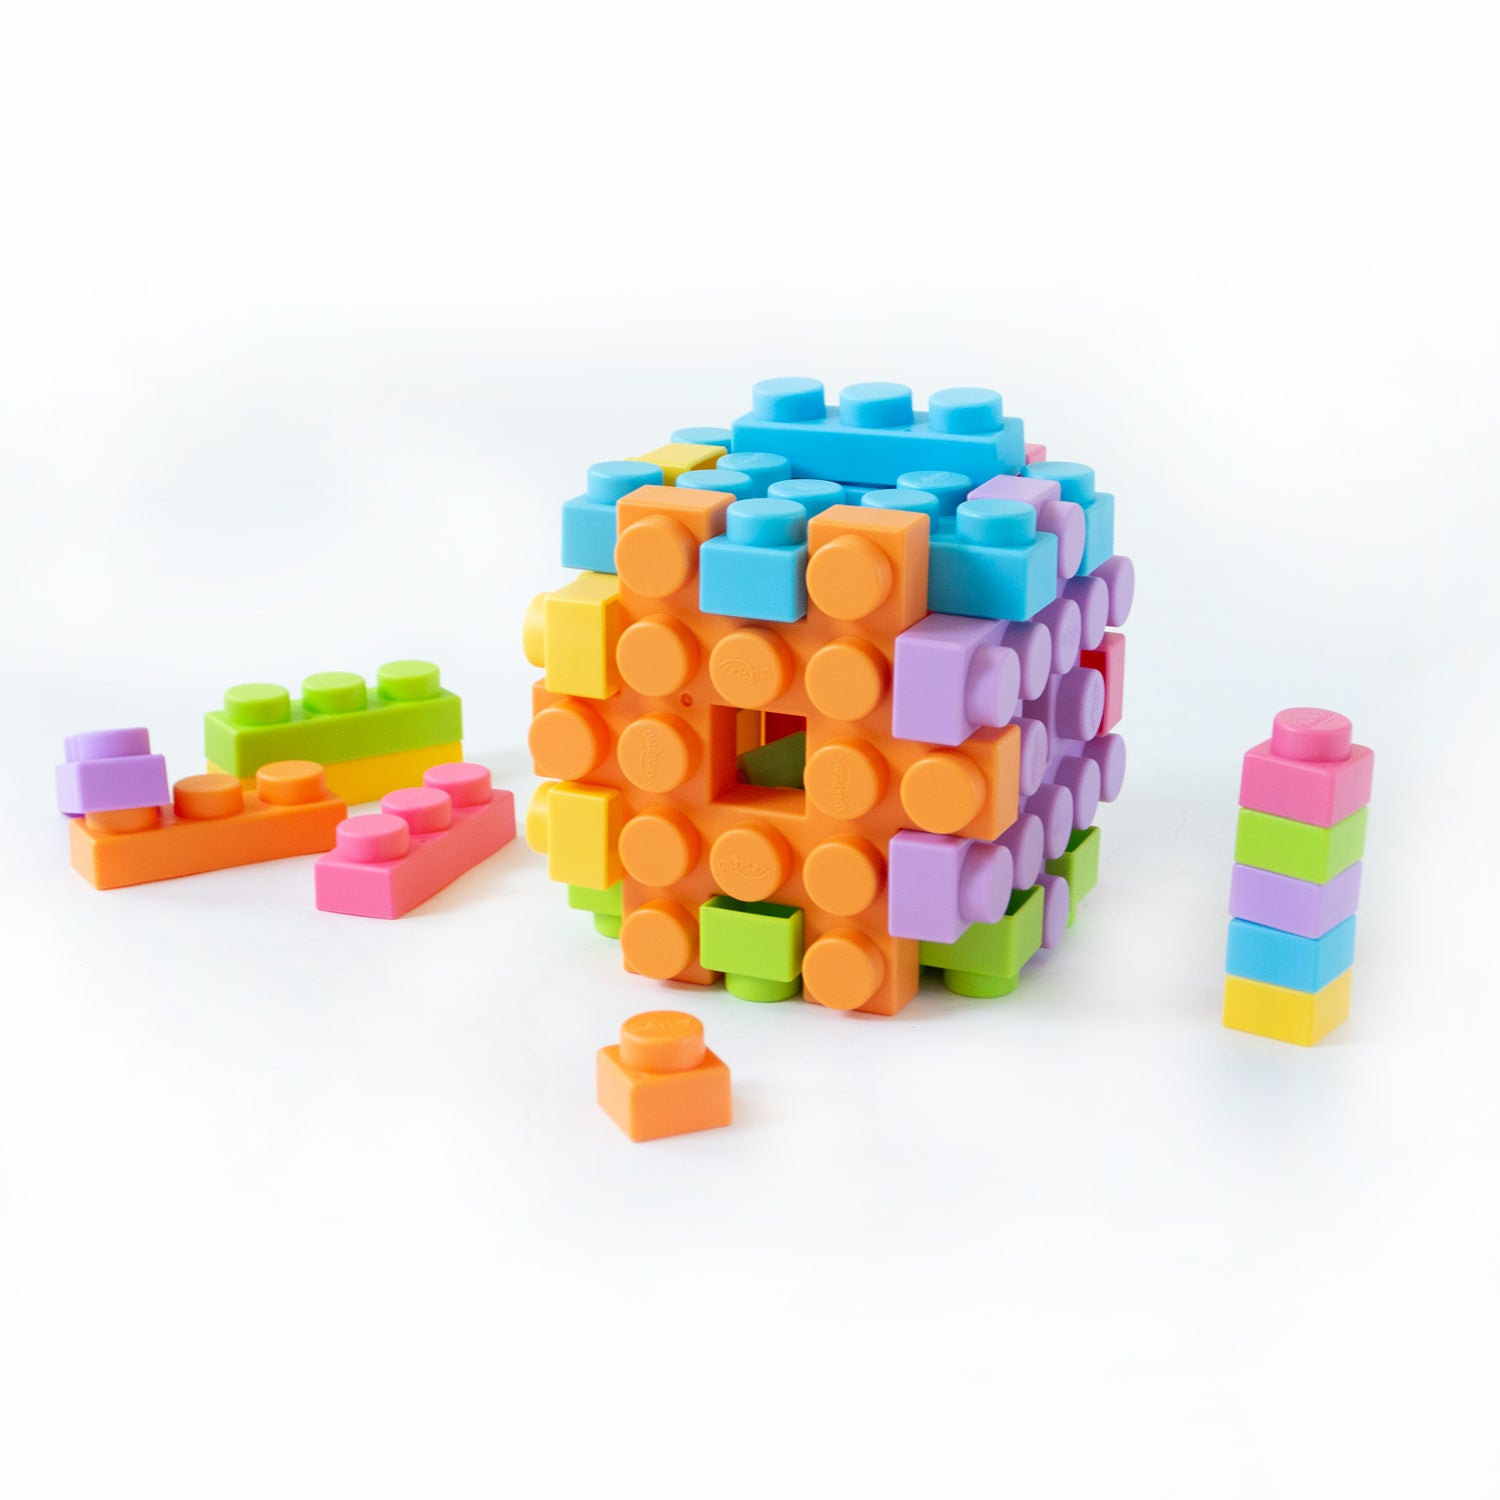 UNiPLAY Small Waffle Soft Building Blocks for Ages 3 Months & Up Toddlers-Small Cube 6-Piece Set